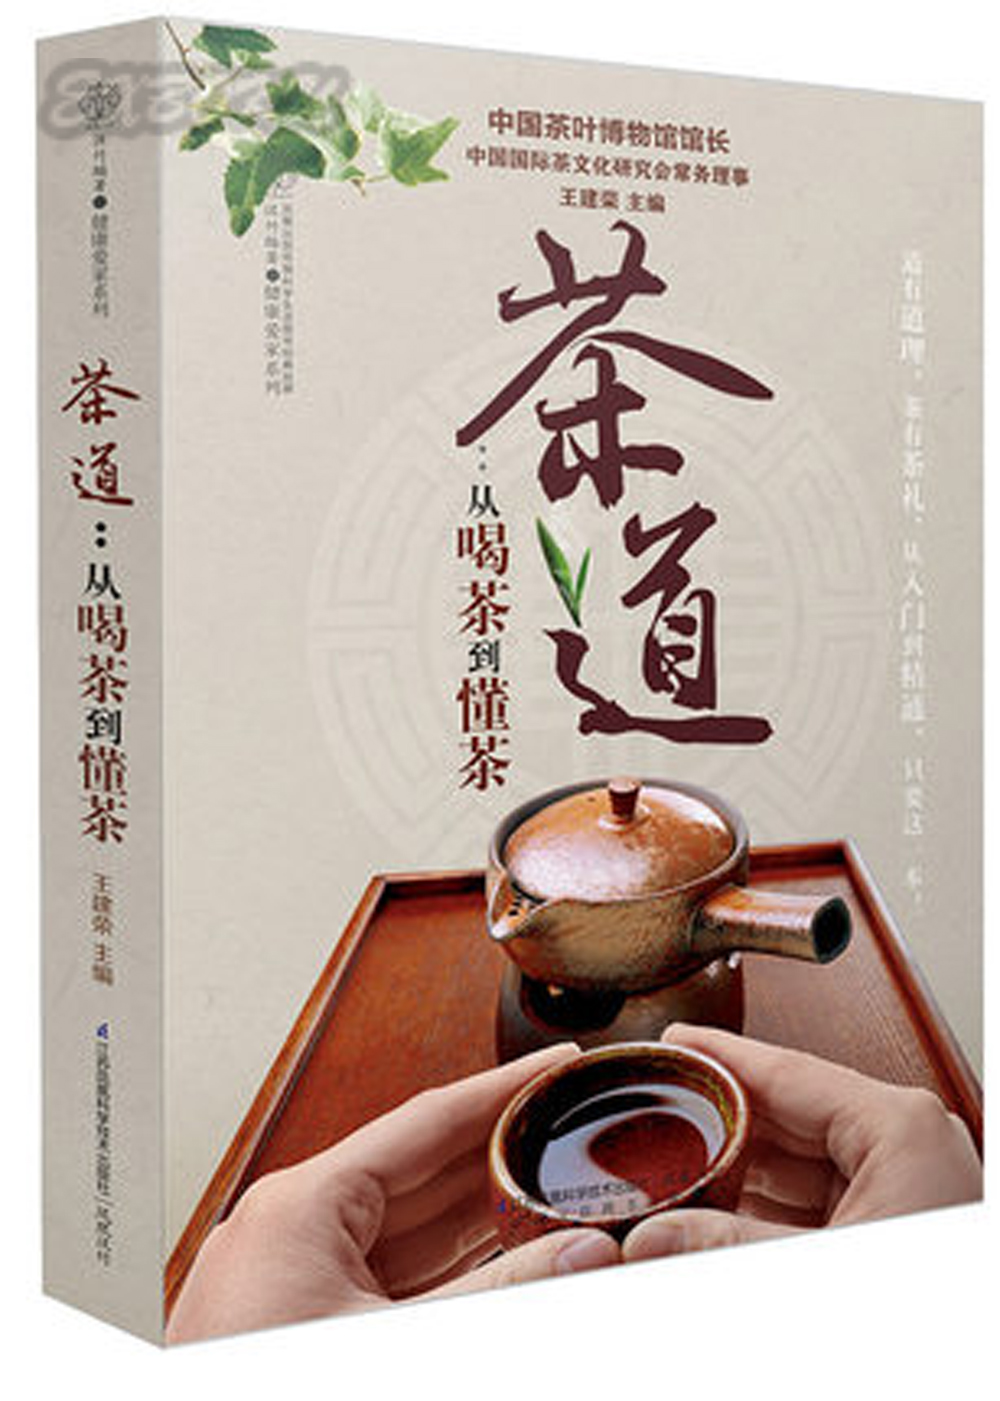 Tea ceremony- tea from drinking tea to understand (more than 600 Figure experts teach you to read the tea) green/red tea tea lall katki